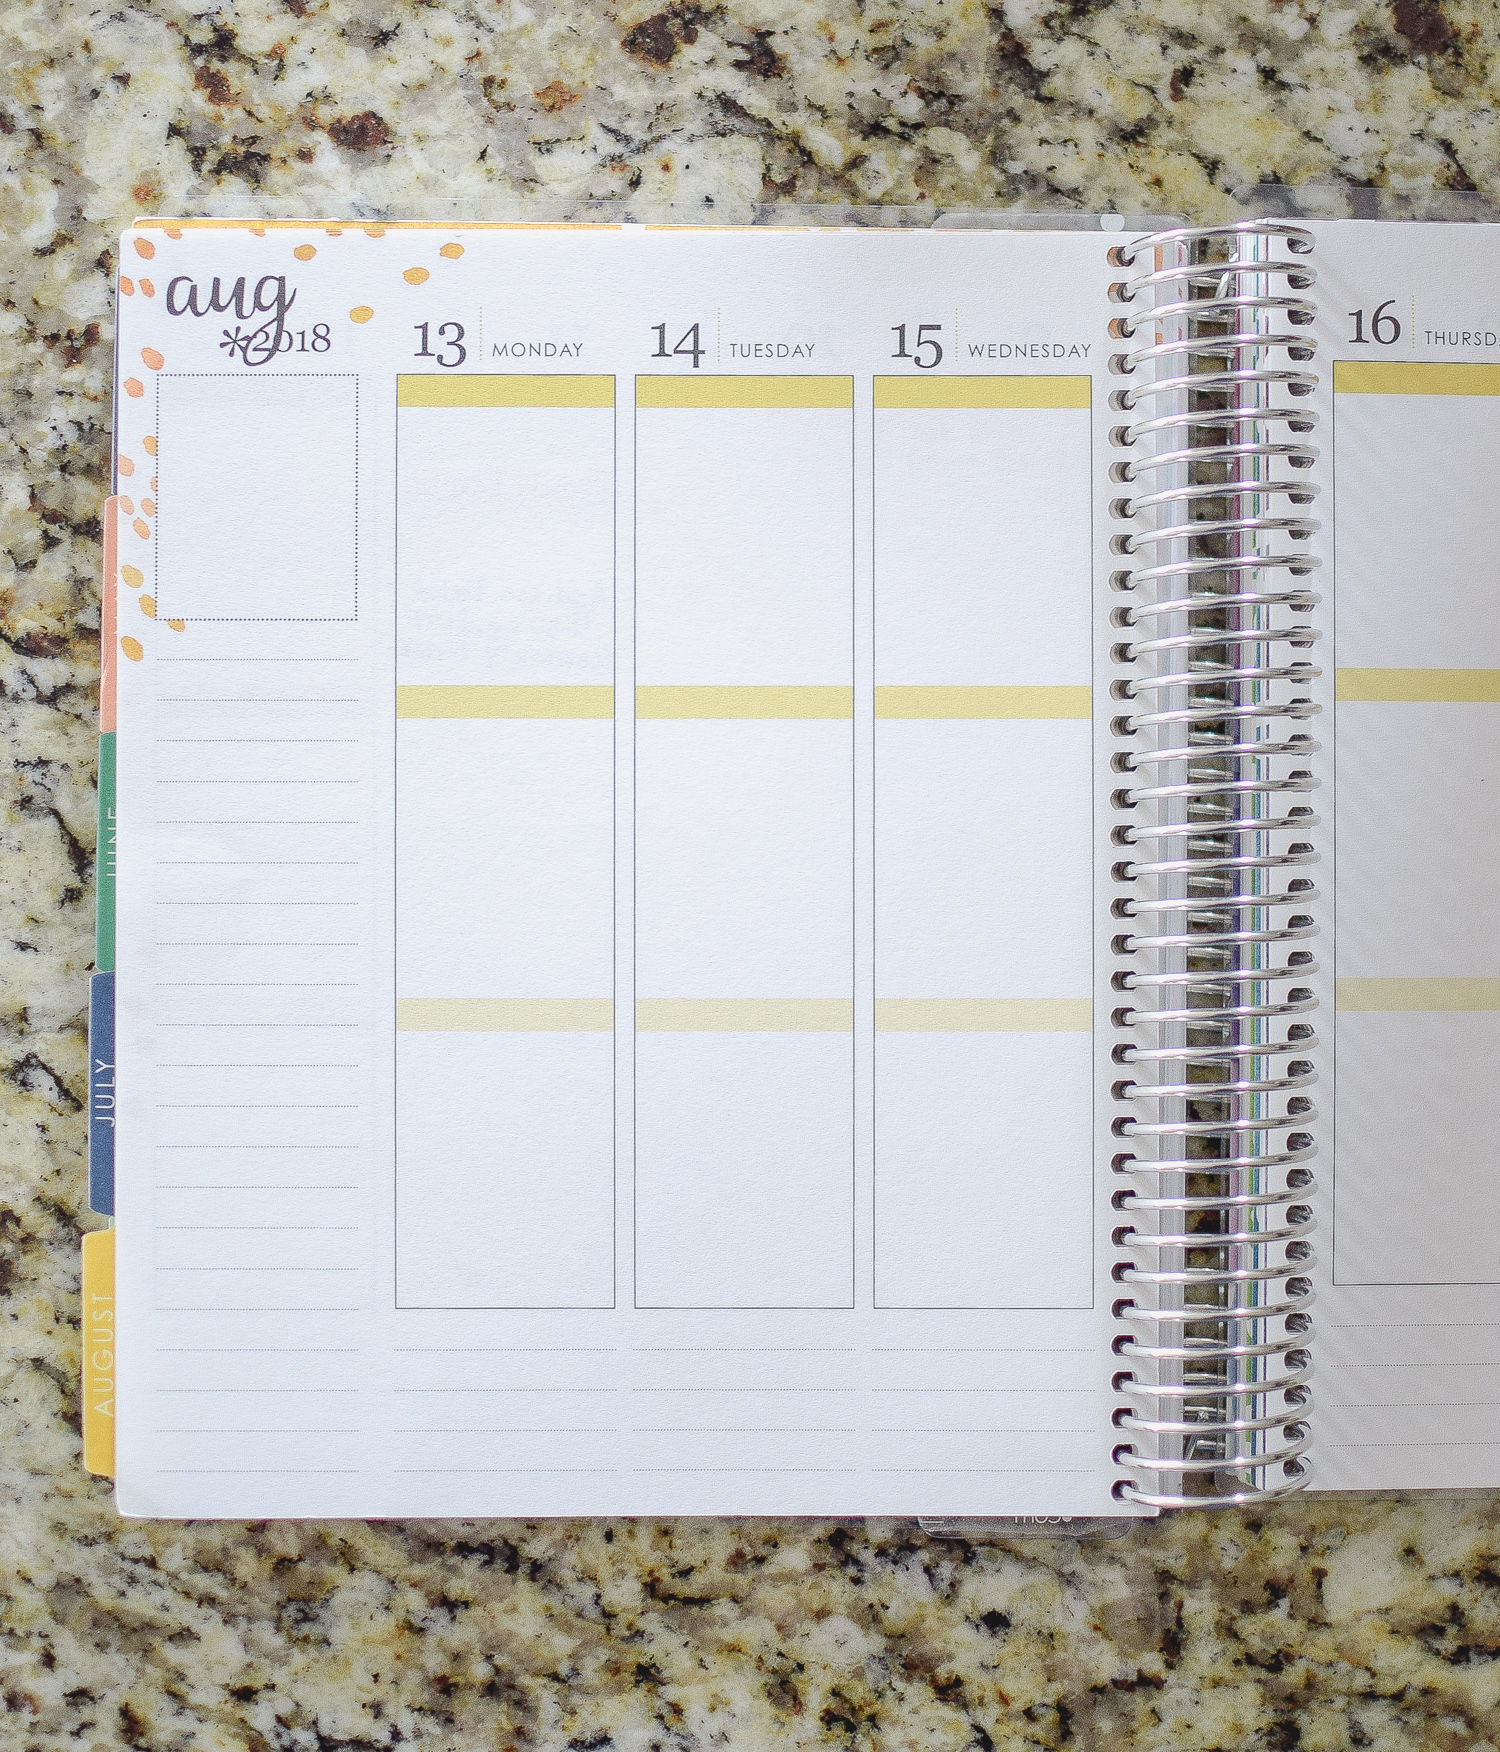 Paper planners are great for those who like to have a physical planner to schedule and organize their days.